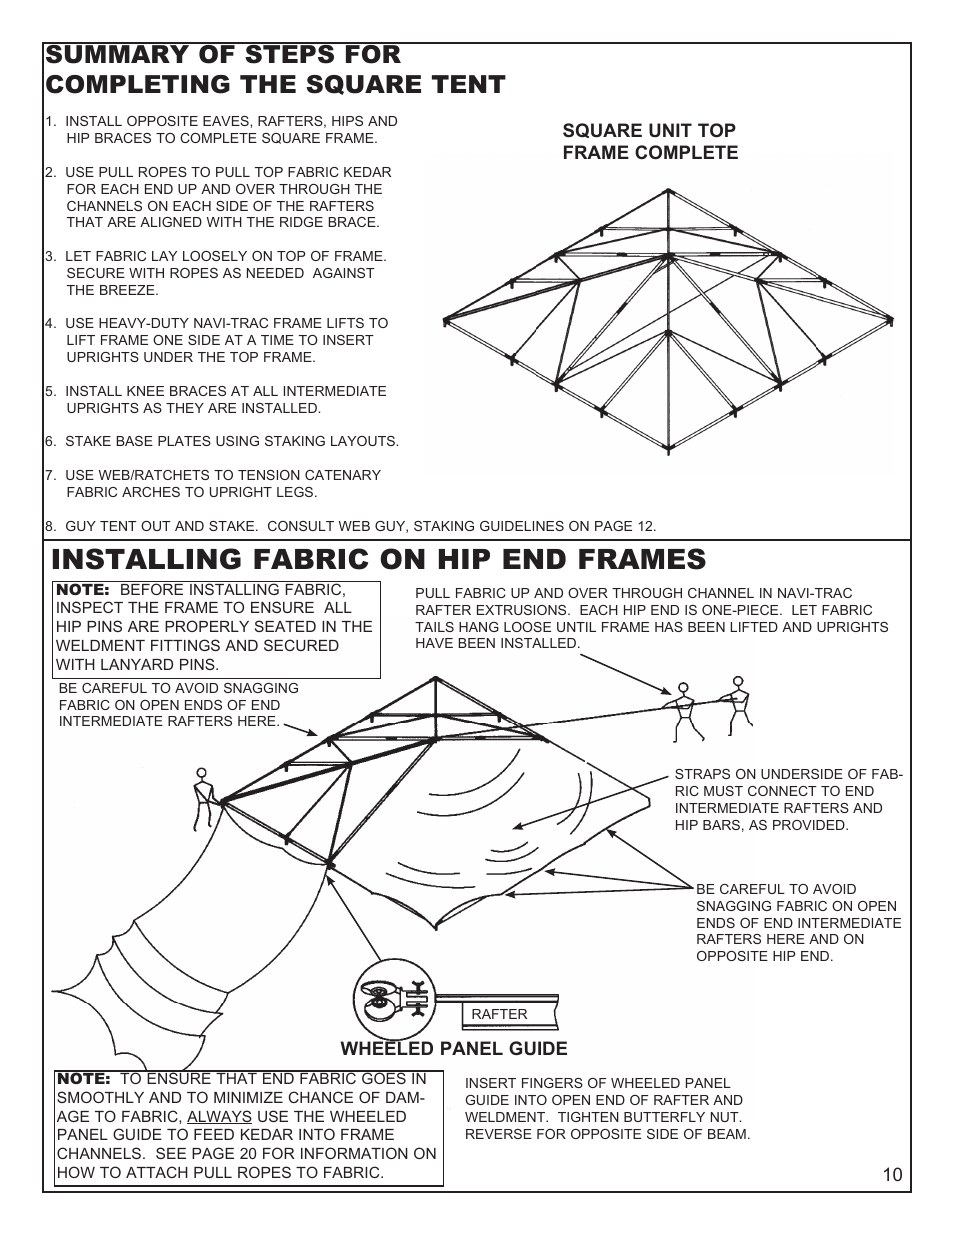 Installing fabric on hip end frames, Summary of steps for completing ...